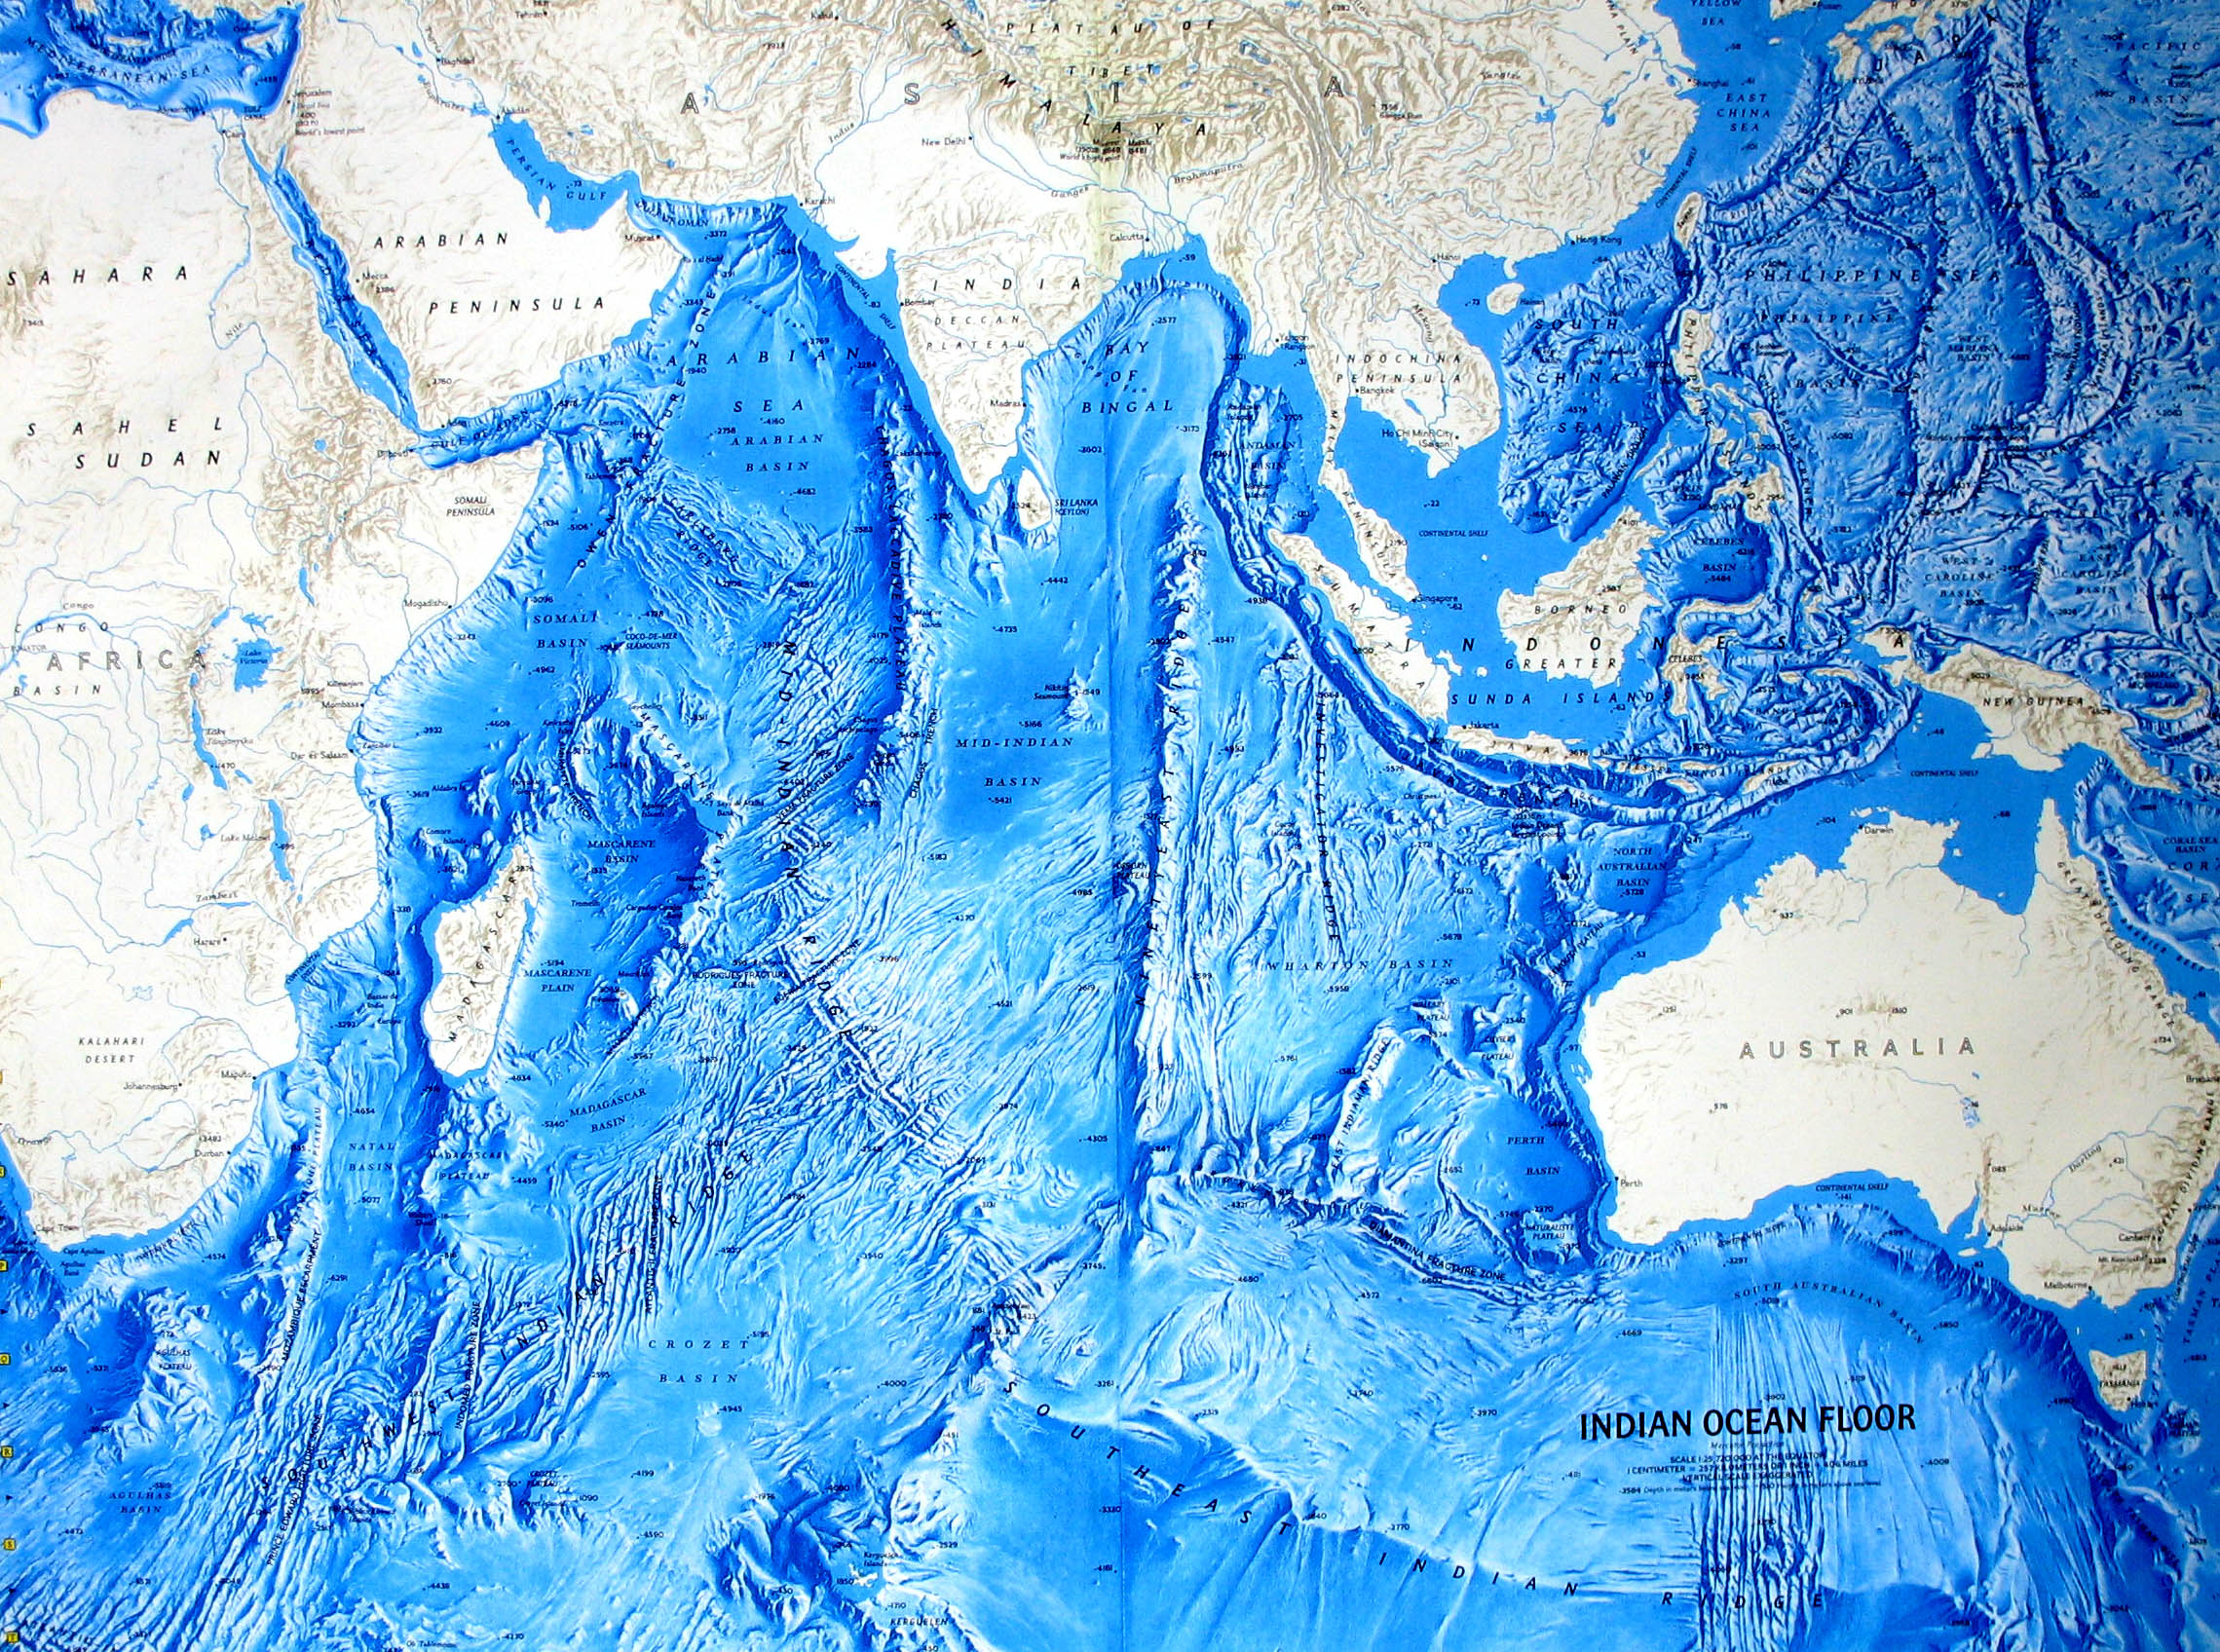 Ocean Floor Relief Maps Detailed Maps of Sea and Ocean Depths